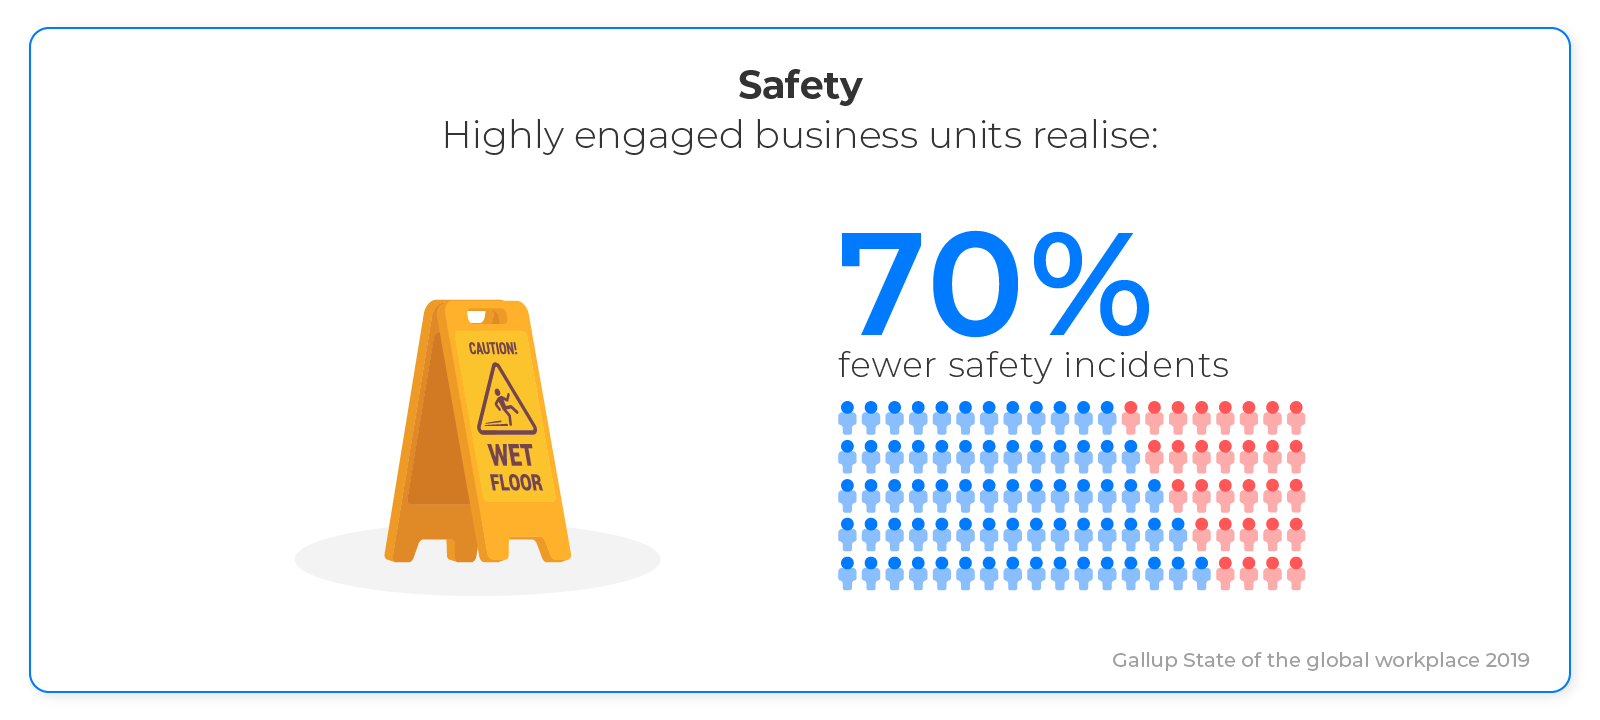 Highly engaged business units - 70% fewer safety incidents